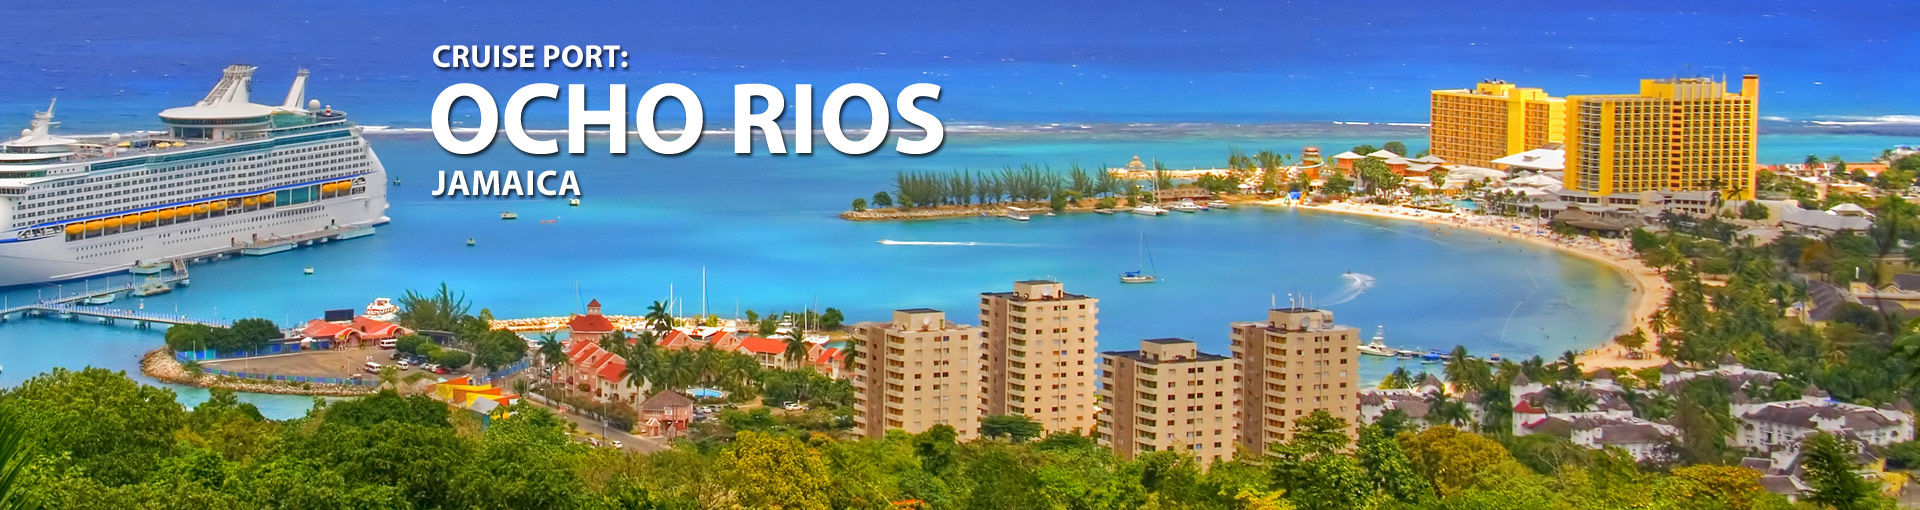 Cruises to Ocho Rios, Jamaica